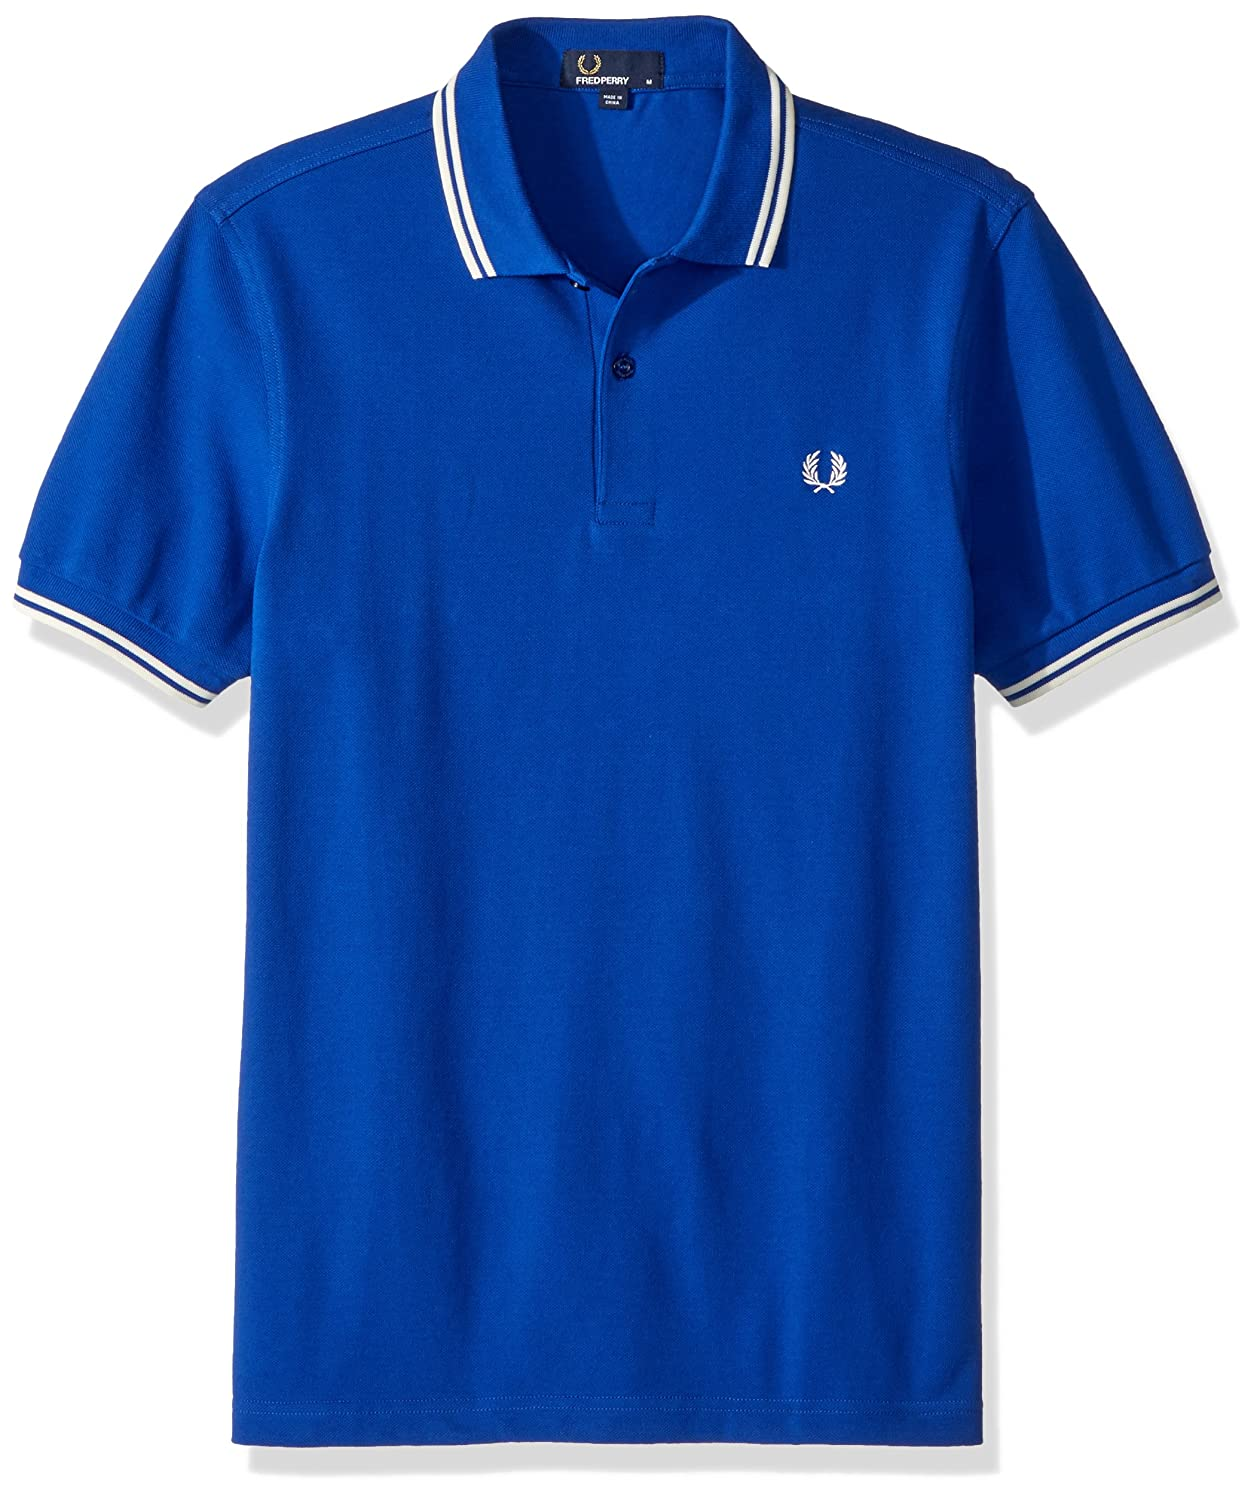 Bleu (Regal Ecru F80) M Frouge Perry Twin Tipped Shirt Polo Homme